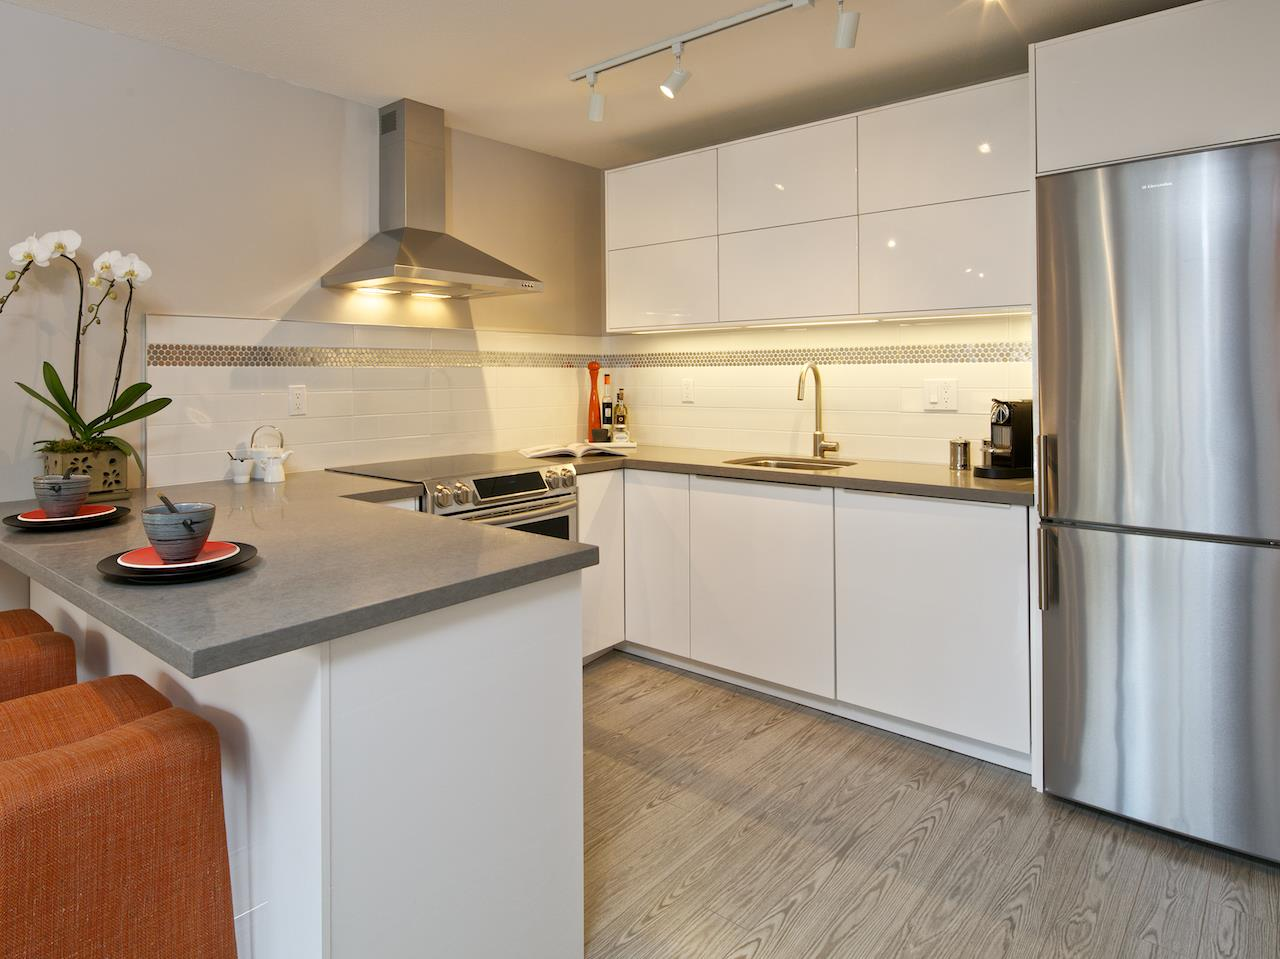 "Photo 6: 211 2920 ASH Street in Vancouver: Fairview VW Condo for sale in ""Ashcourt"" (Vancouver West)  : MLS® # R2027760"